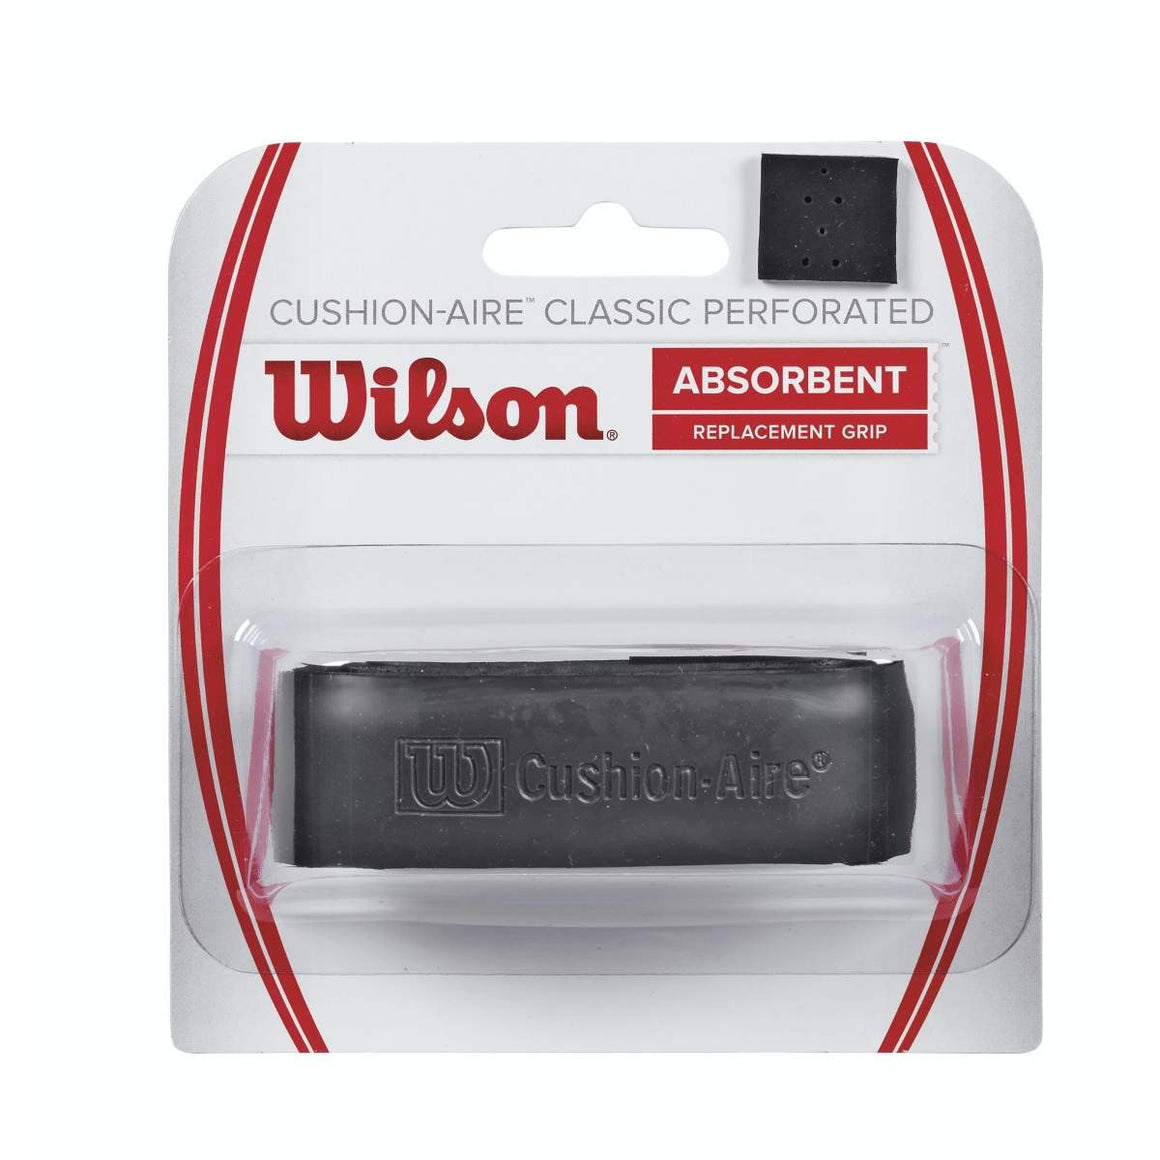 Wilson Wilson Cushion-Aire Classic Perforated